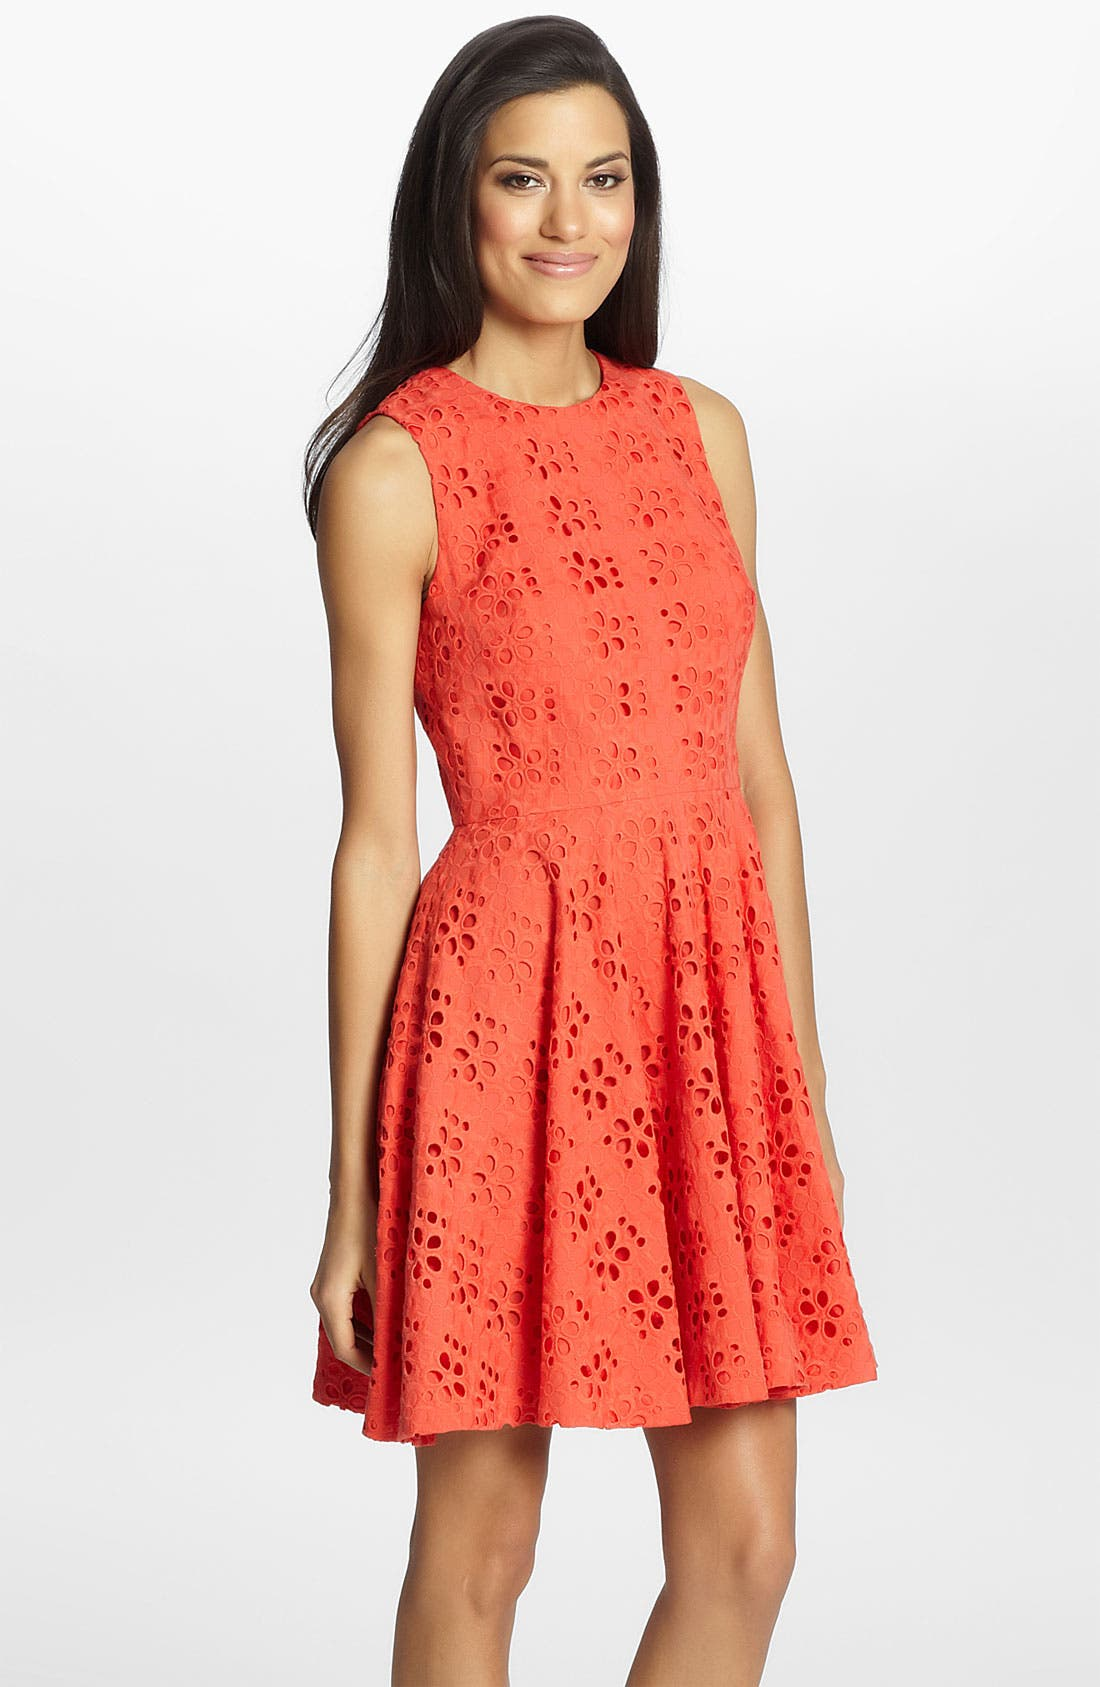 Alternate Image 1 Selected - Cynthia Steffe 'Hailey' Eyelet Fit & Flare Dress